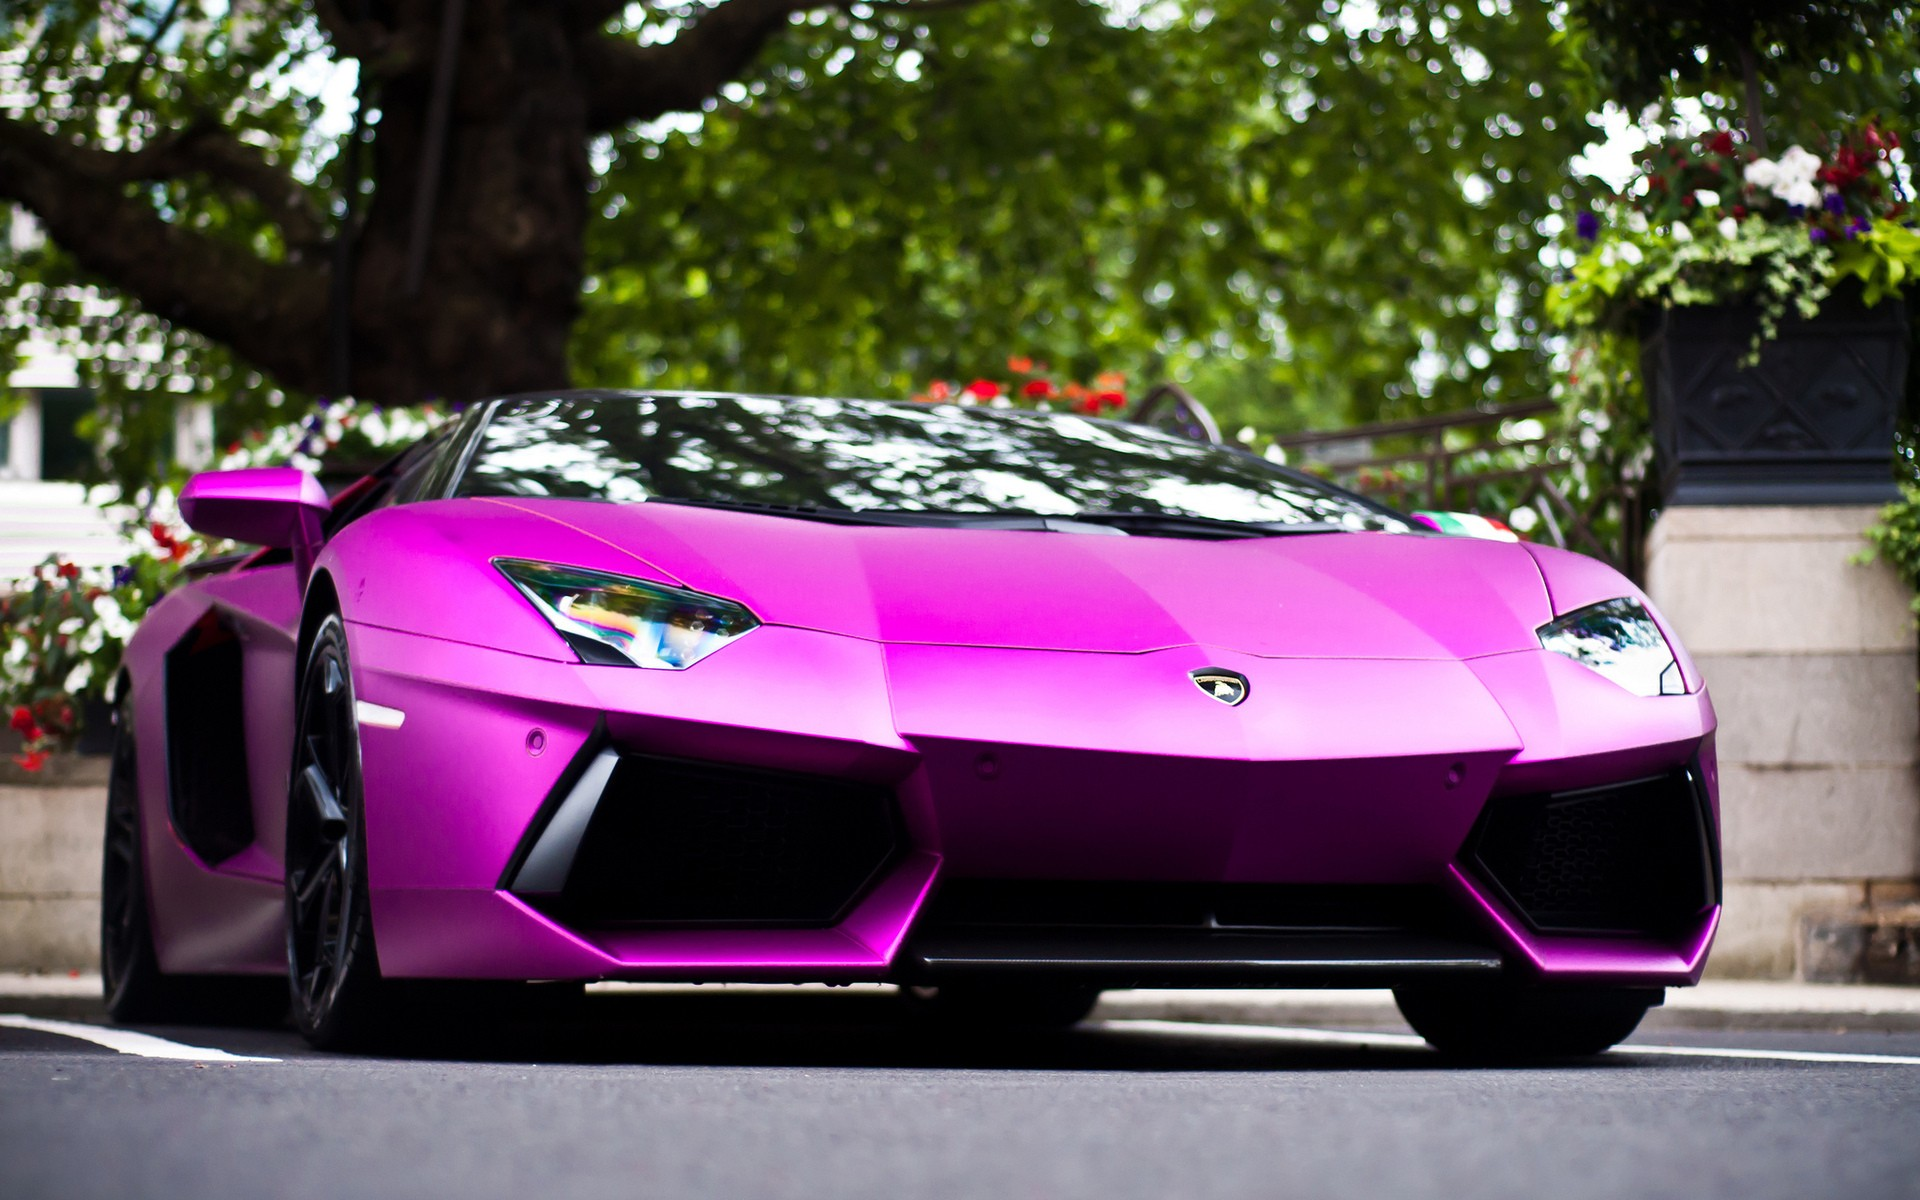 Lamborghini in Pink Google Themes 1920x1200